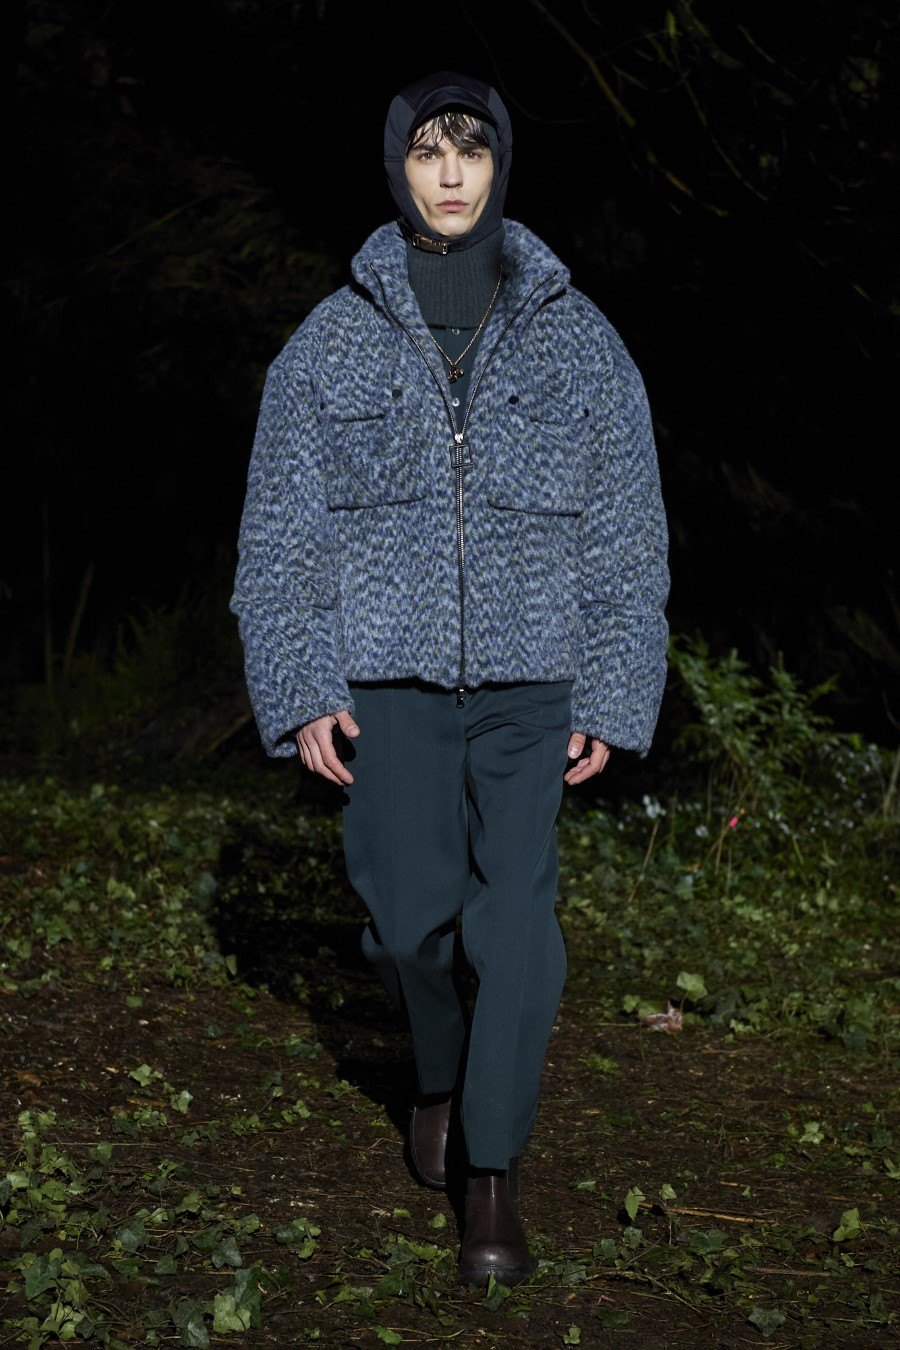 Wooyoungmi Fall Winter 2021 - Paris Fashion Week Men's